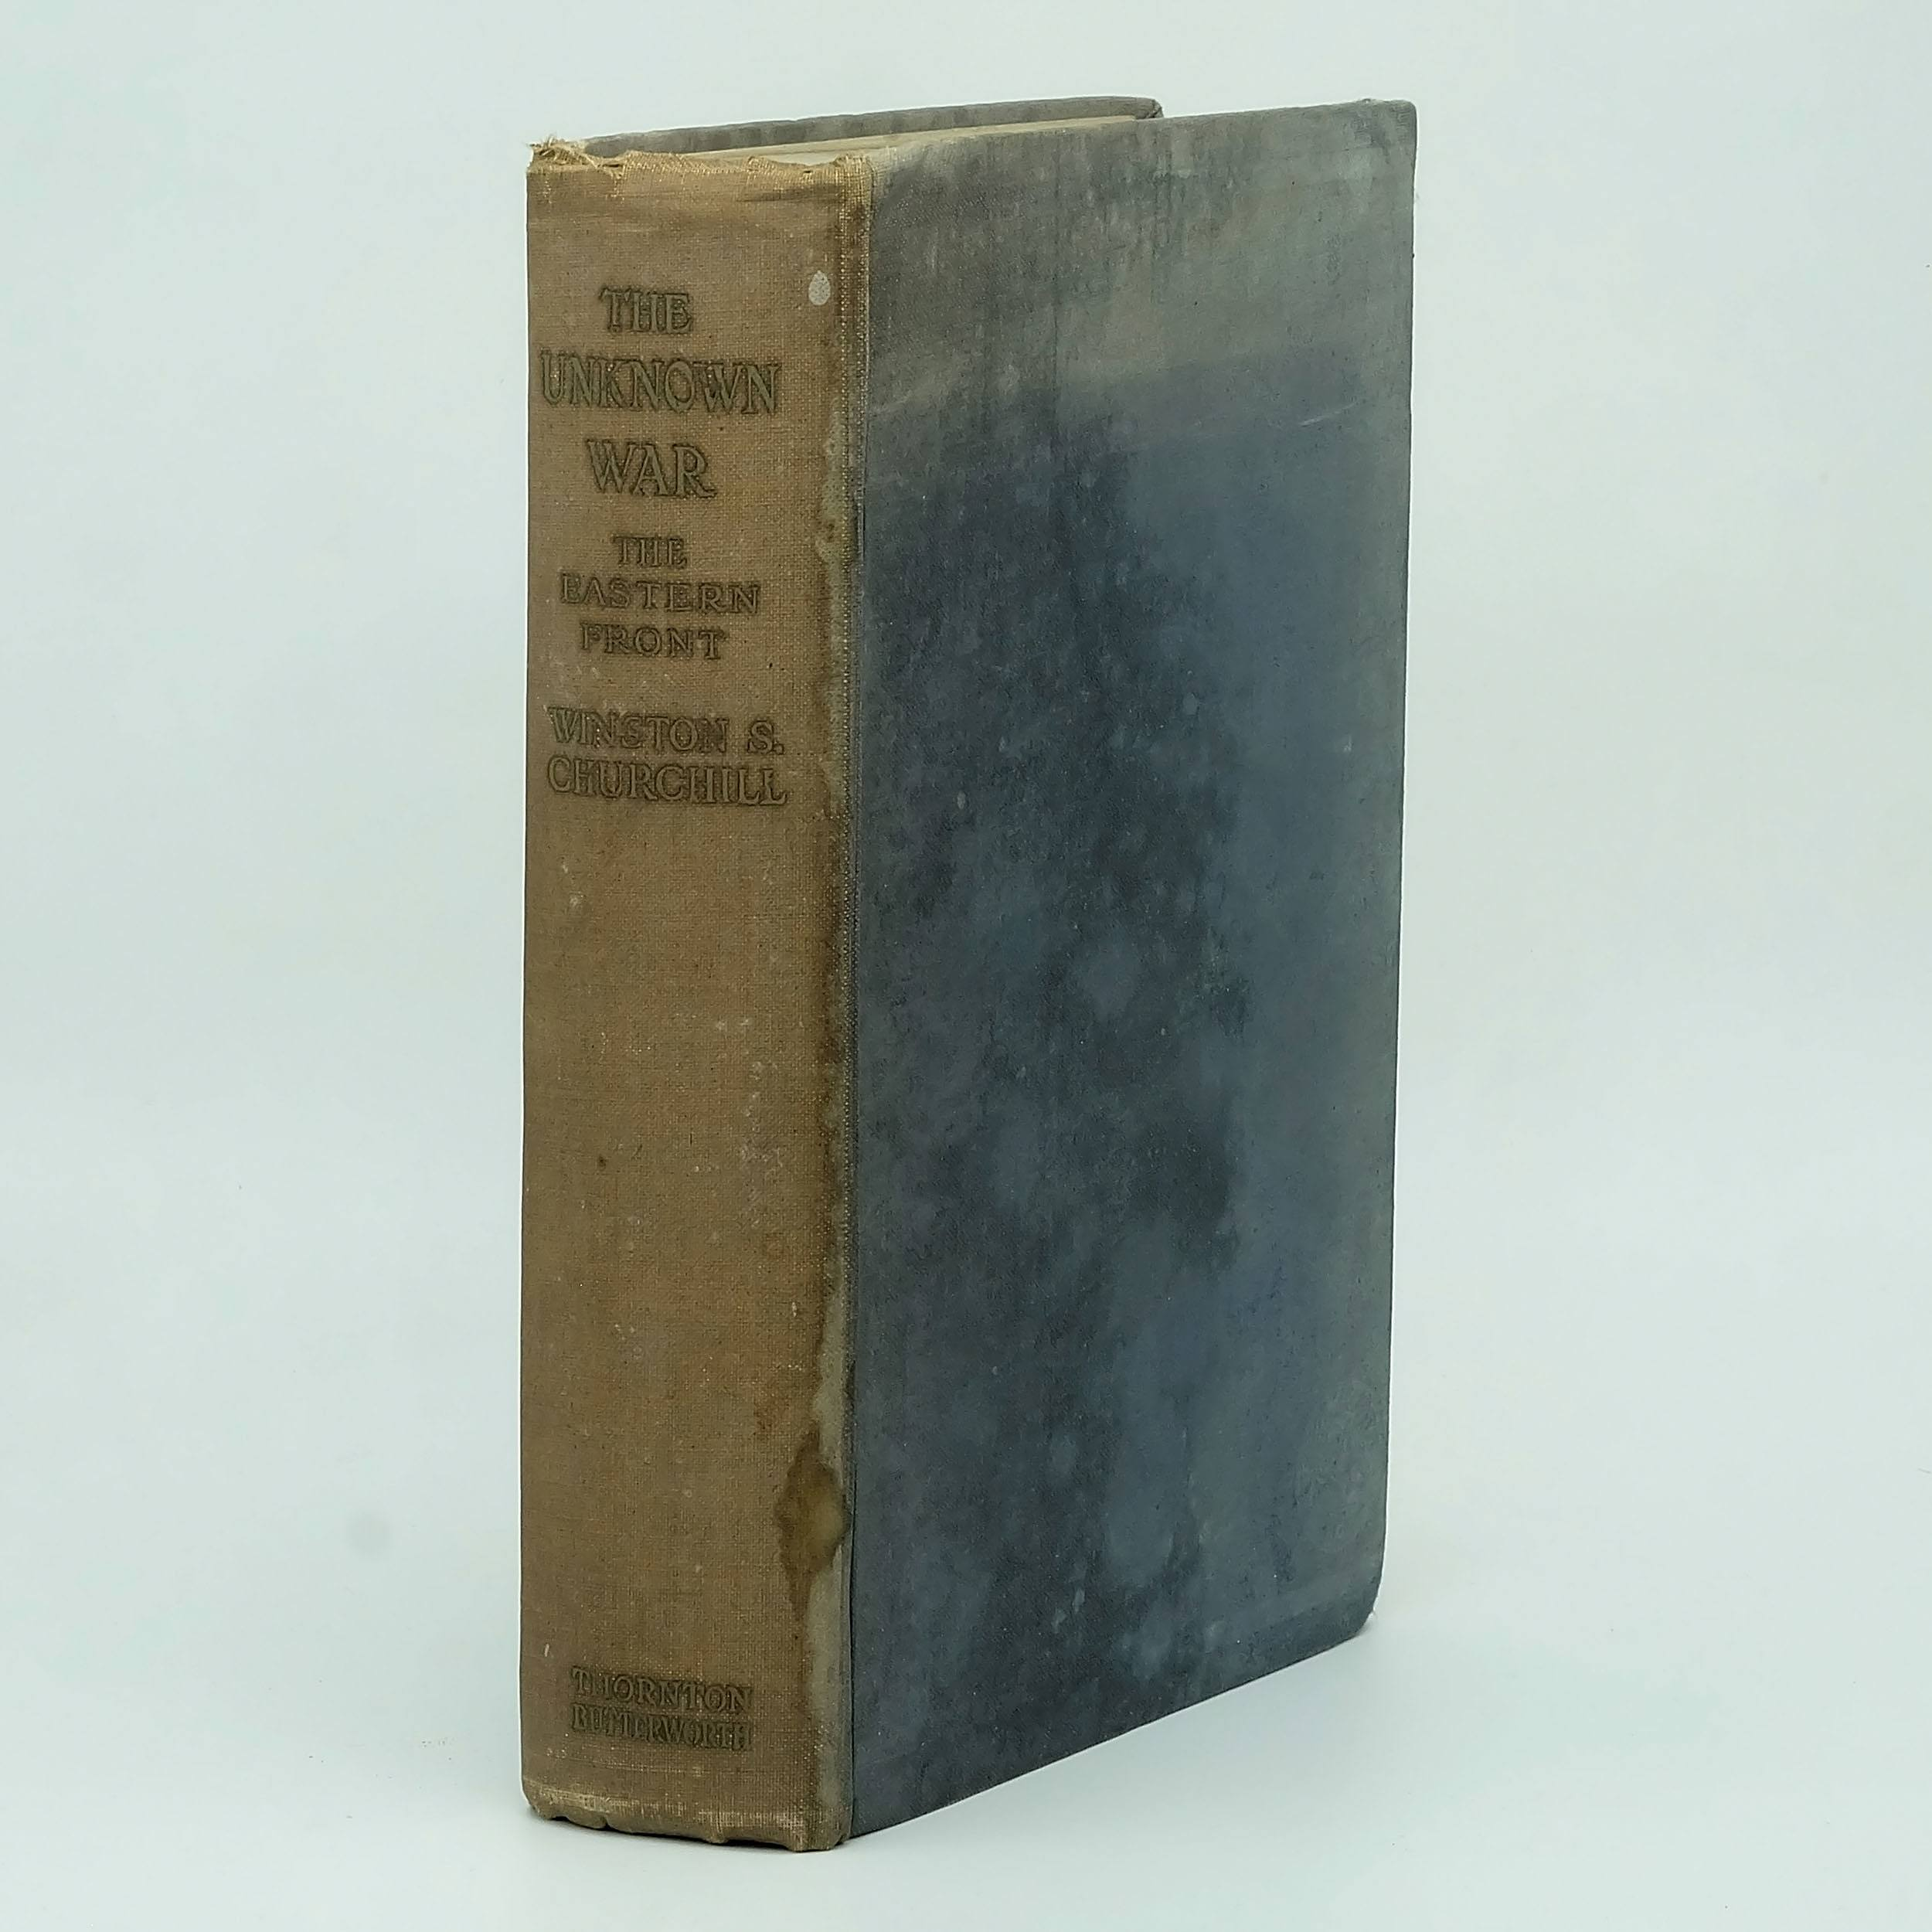 'Winston Churchill The Unknown War: The Eastern Front Thornton Butterworth Ltd London 1937'